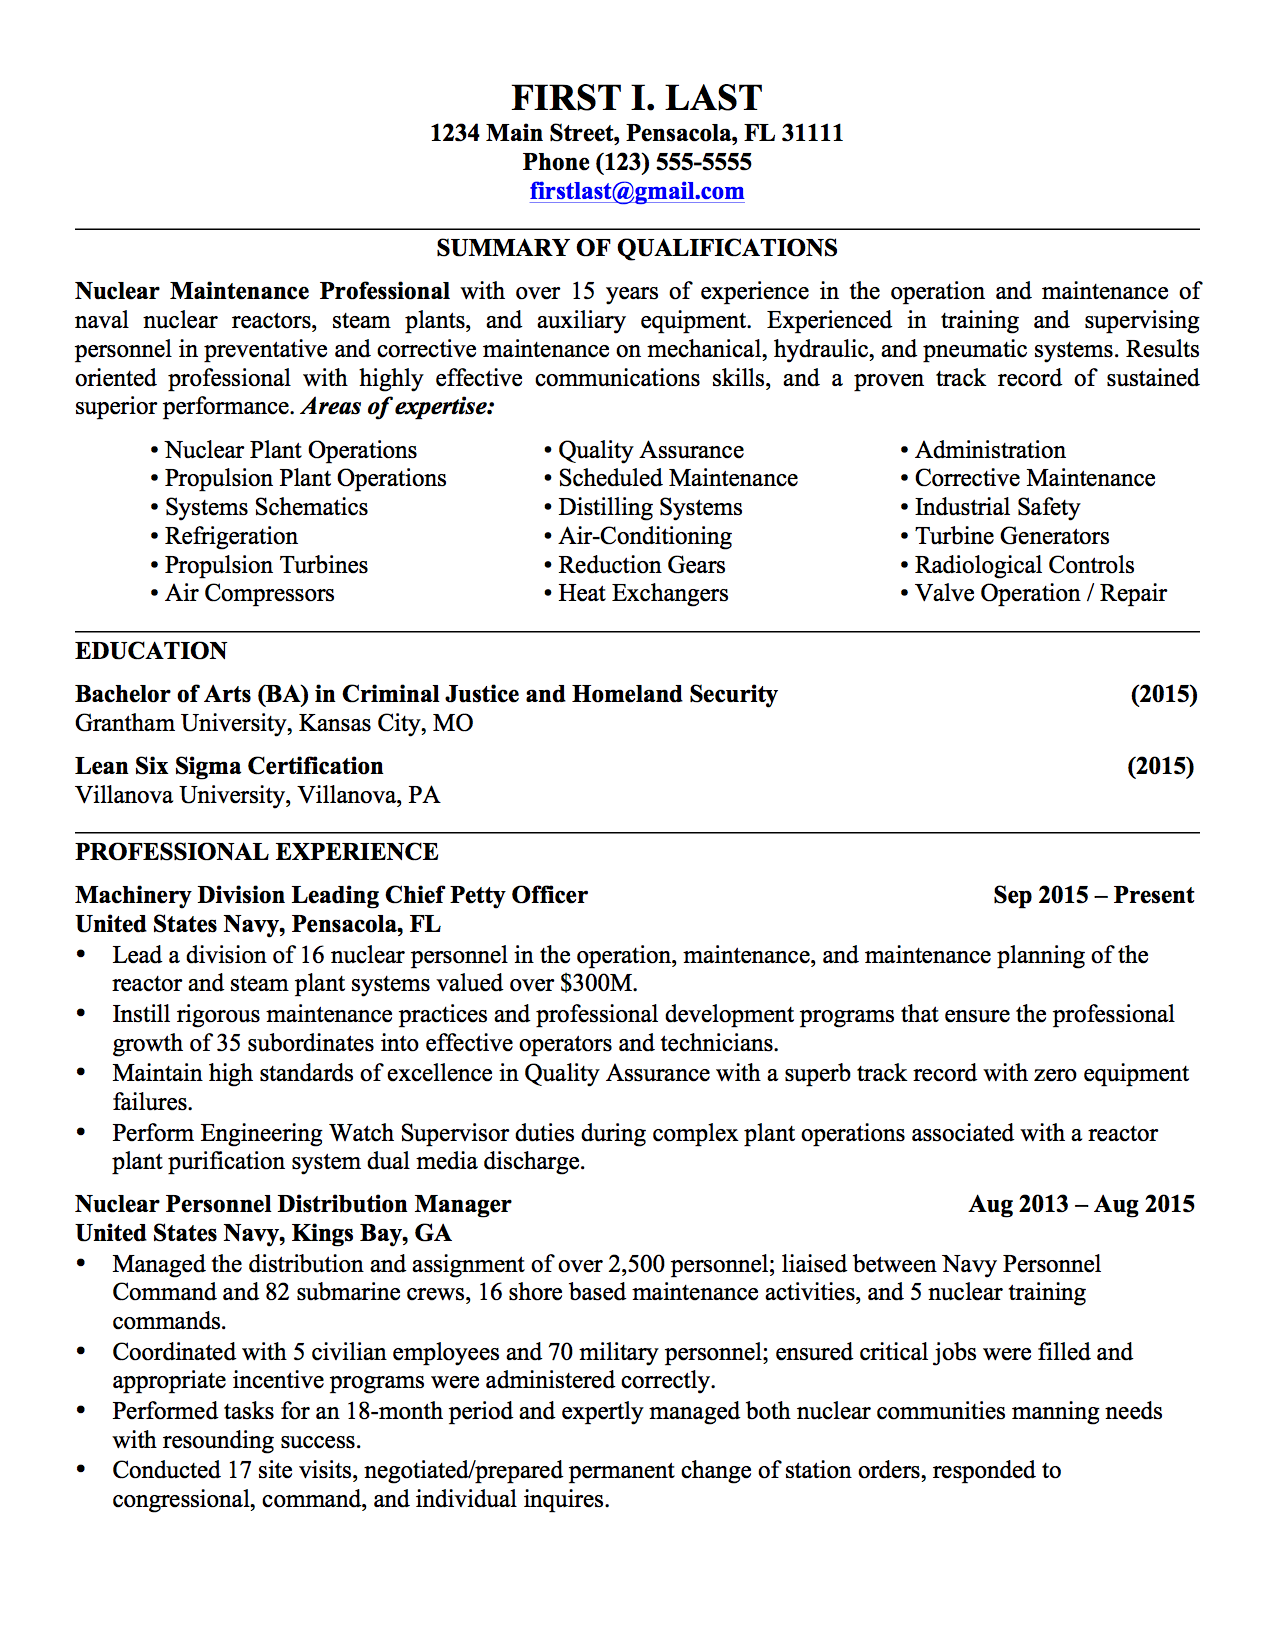 Resume Military Civilian Resume Template 6 sample military to civilian resumes hirepurpose 2 pages